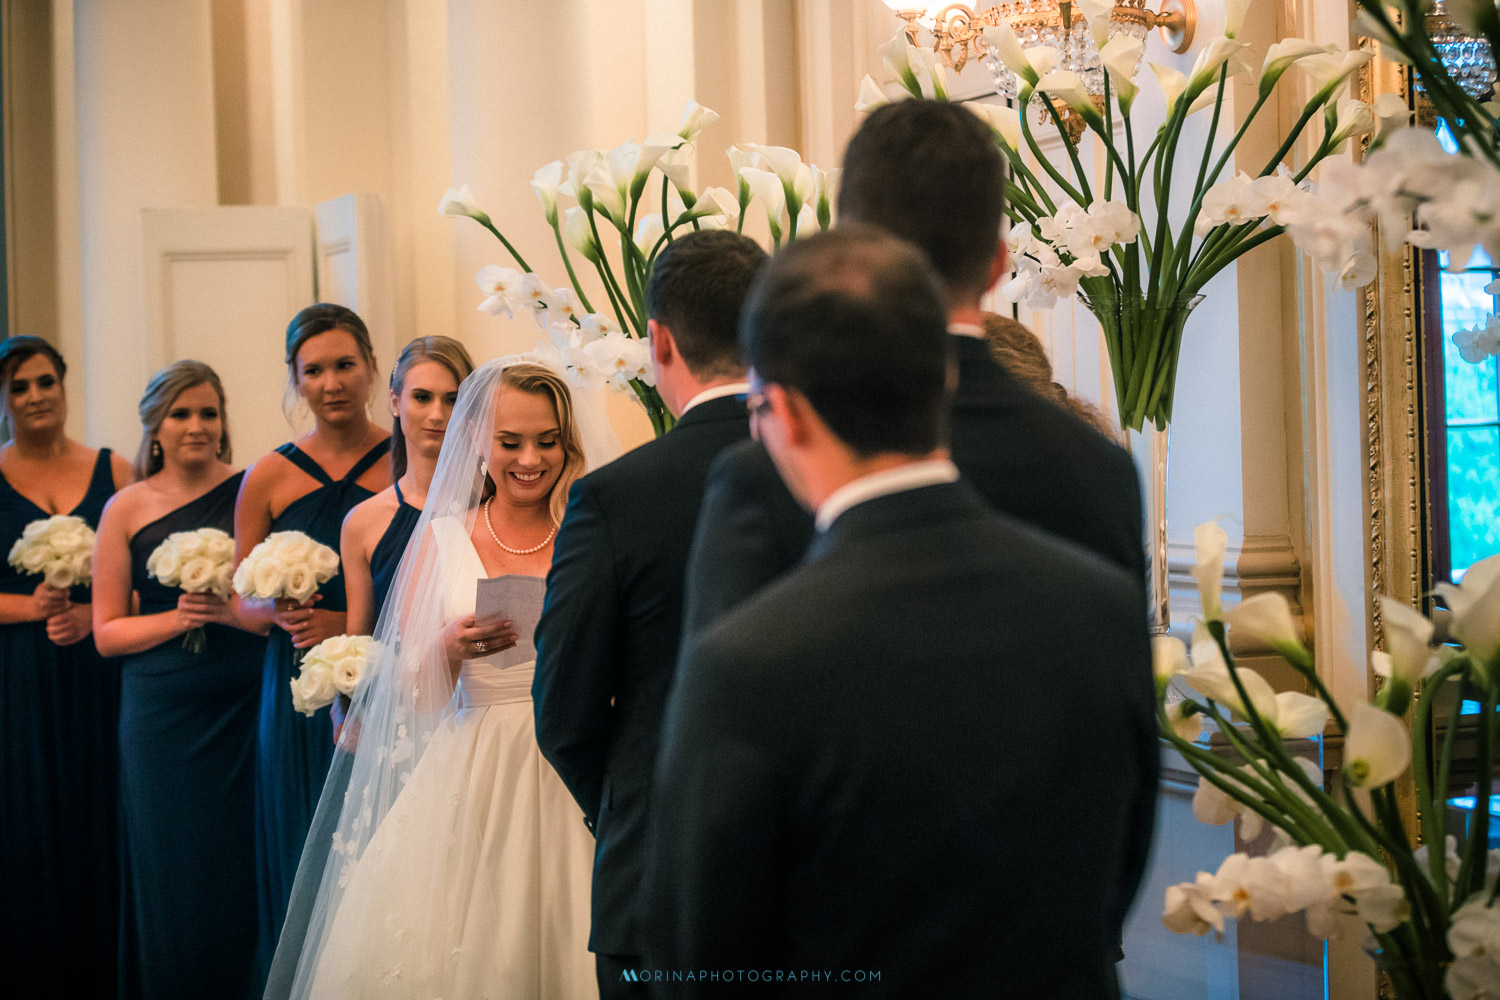 Alexandra & Brian Wedding at Academy of Music51.jpg